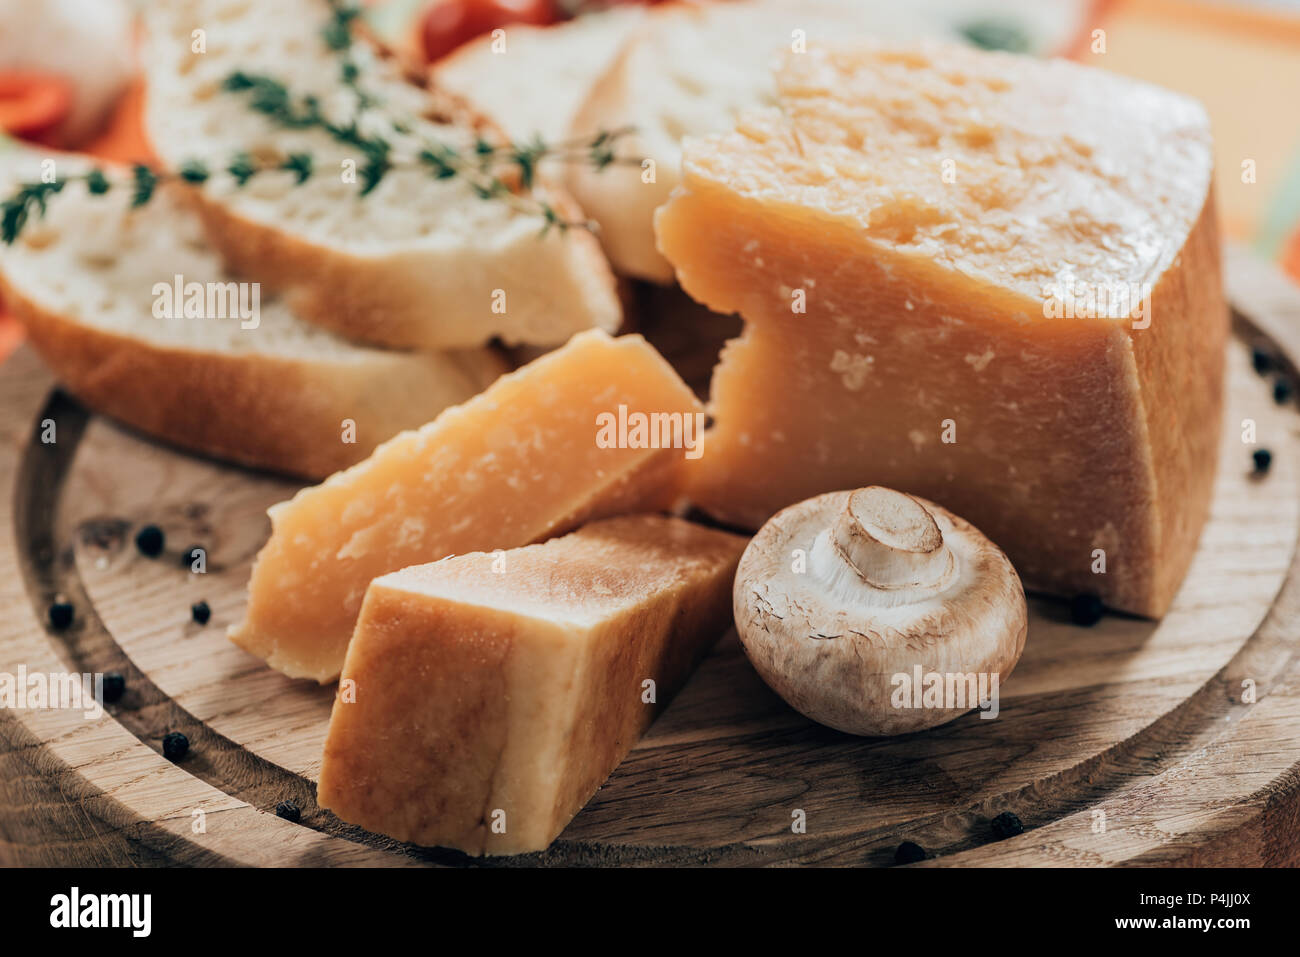 close-up view of delicious baguette and parmesan cheese with mushroom on wooden cutting board - Stock Image